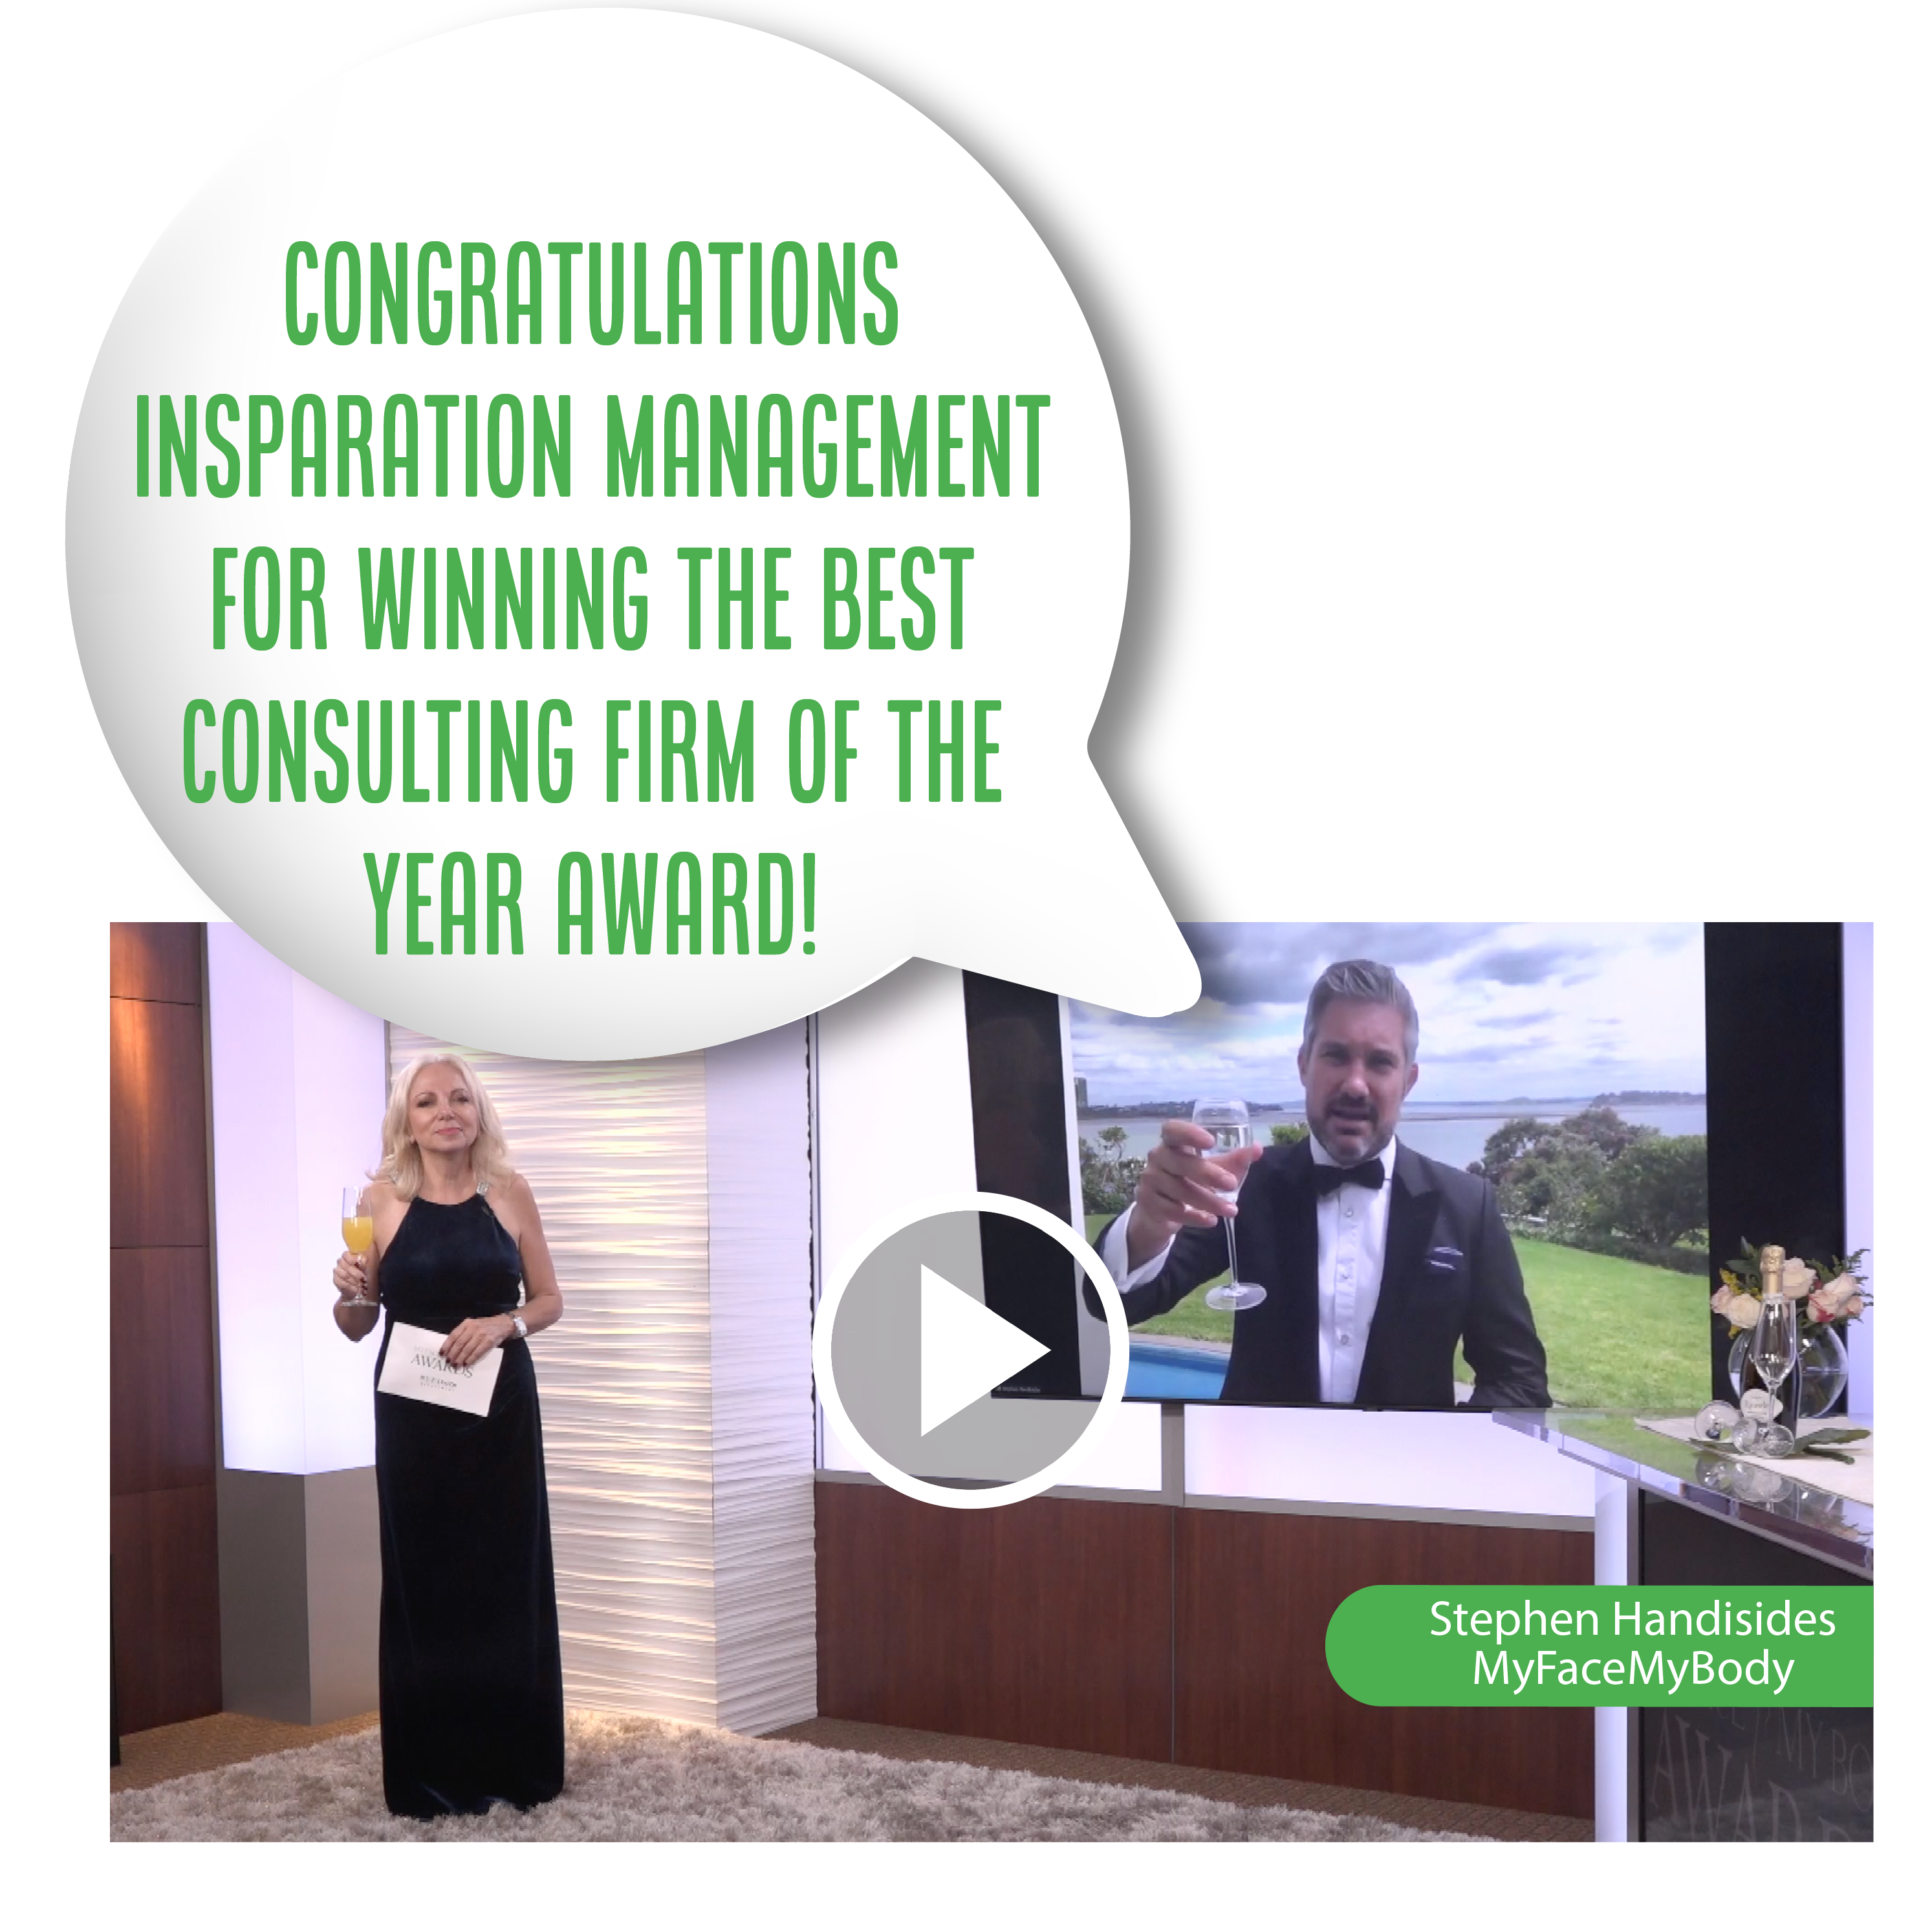 Congratulations-Insparation-Managament-for-winning-the-best-consulting-firm-of-the-year